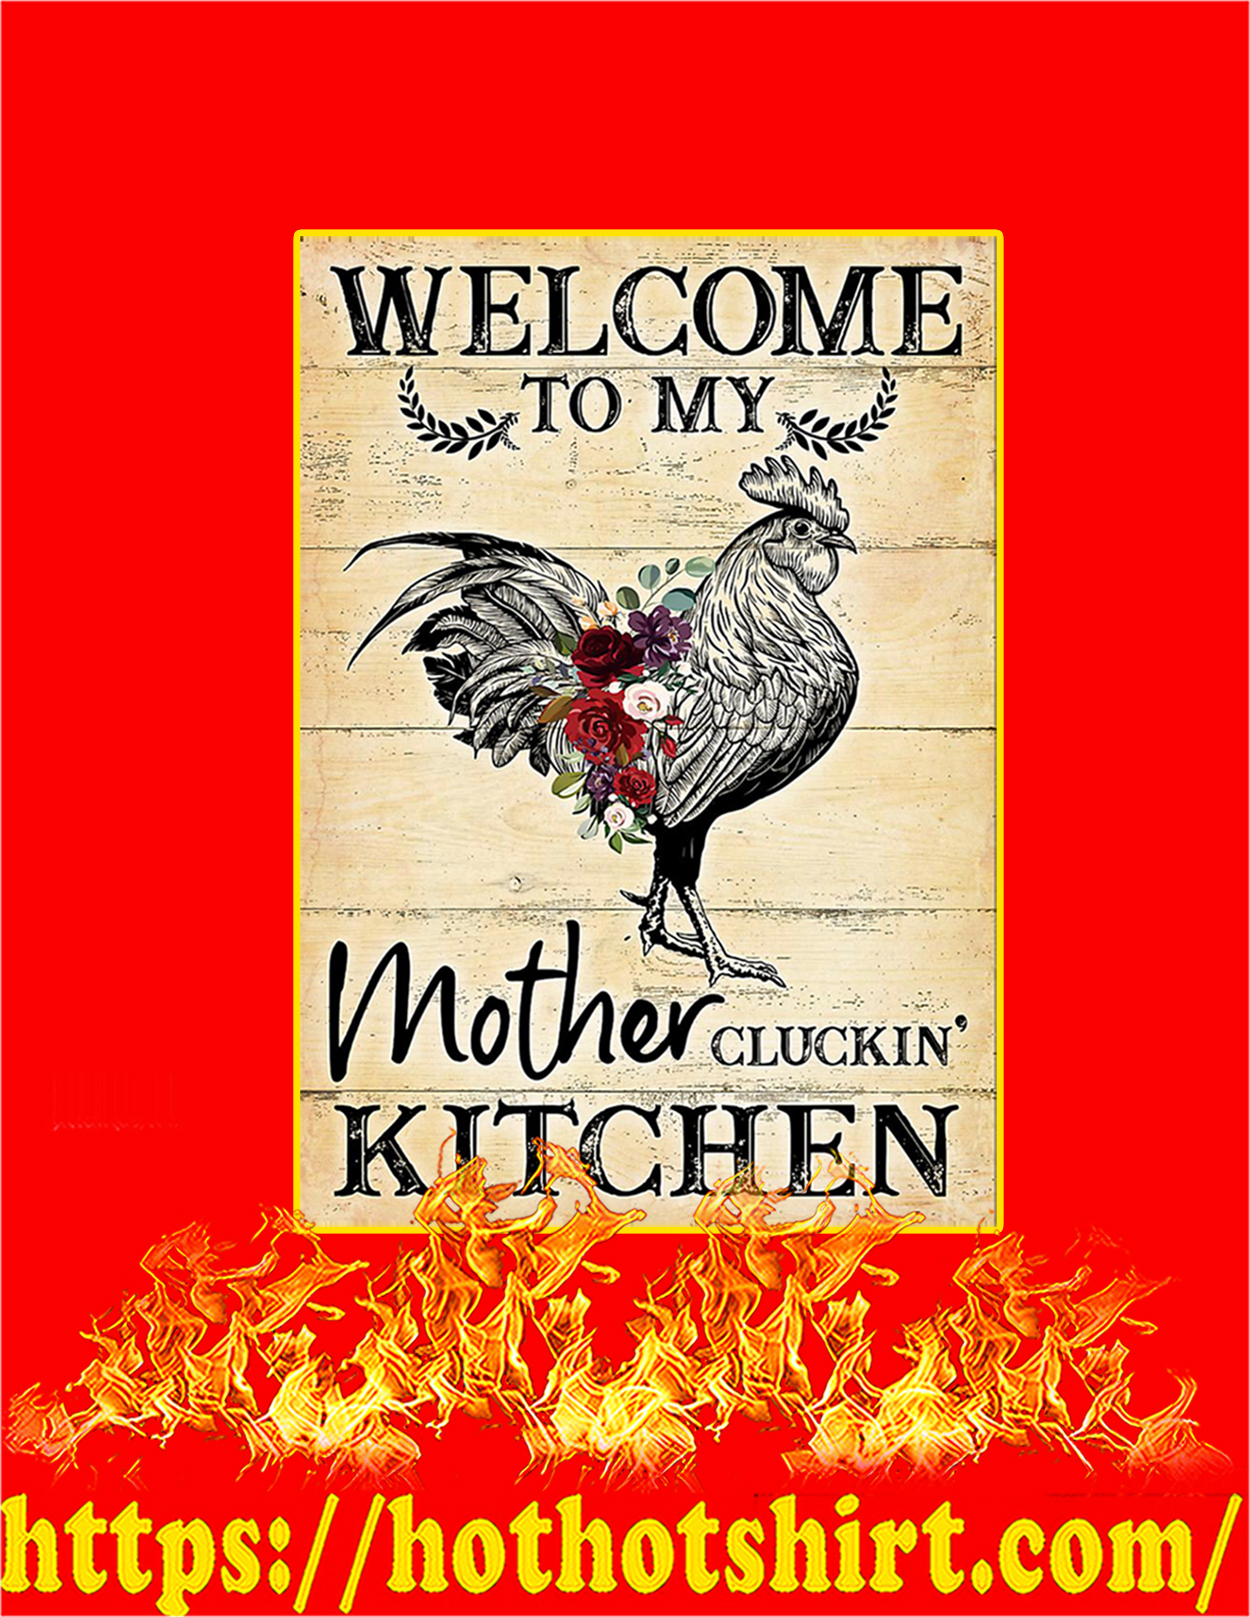 Welcome to my mother cluckin kitchen poster - A3